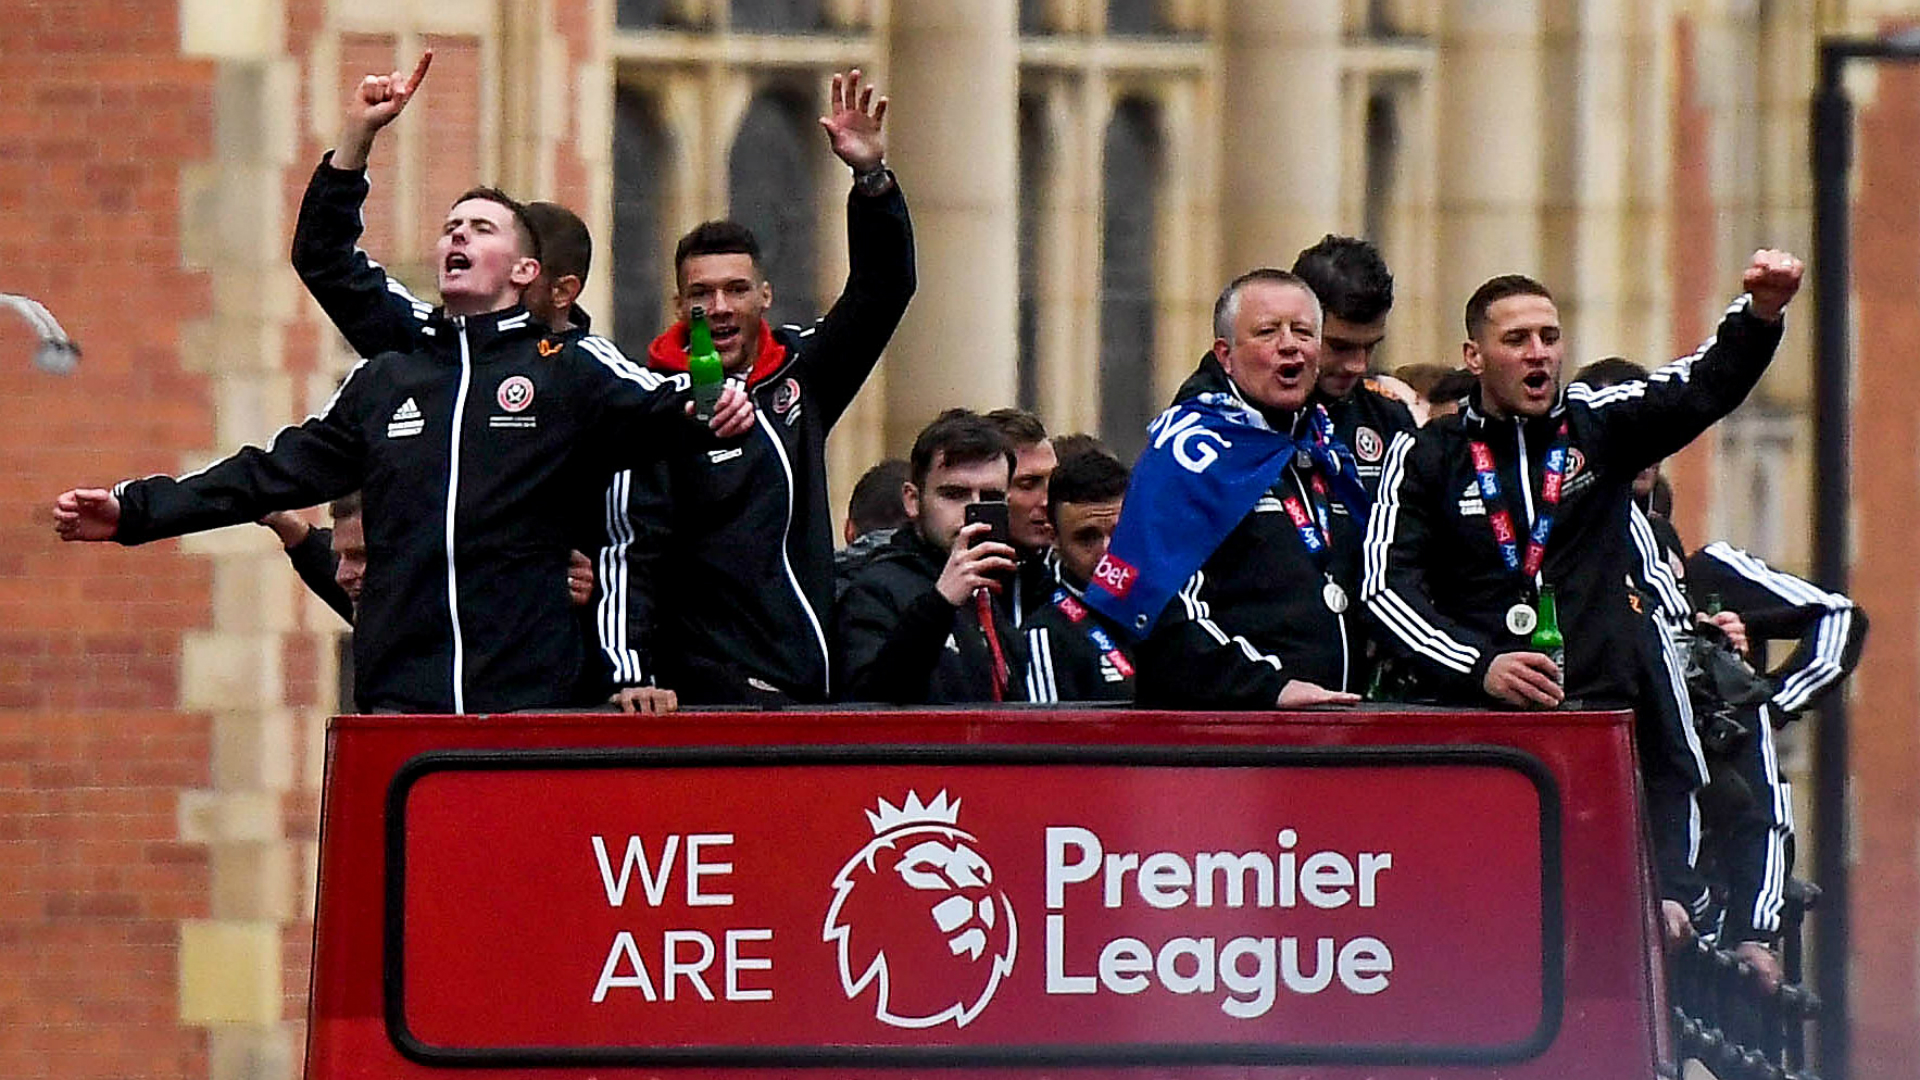 The release of the 2019-20 Premier League fixtures saw newly promoted Sheffield United make an embarrassing error.